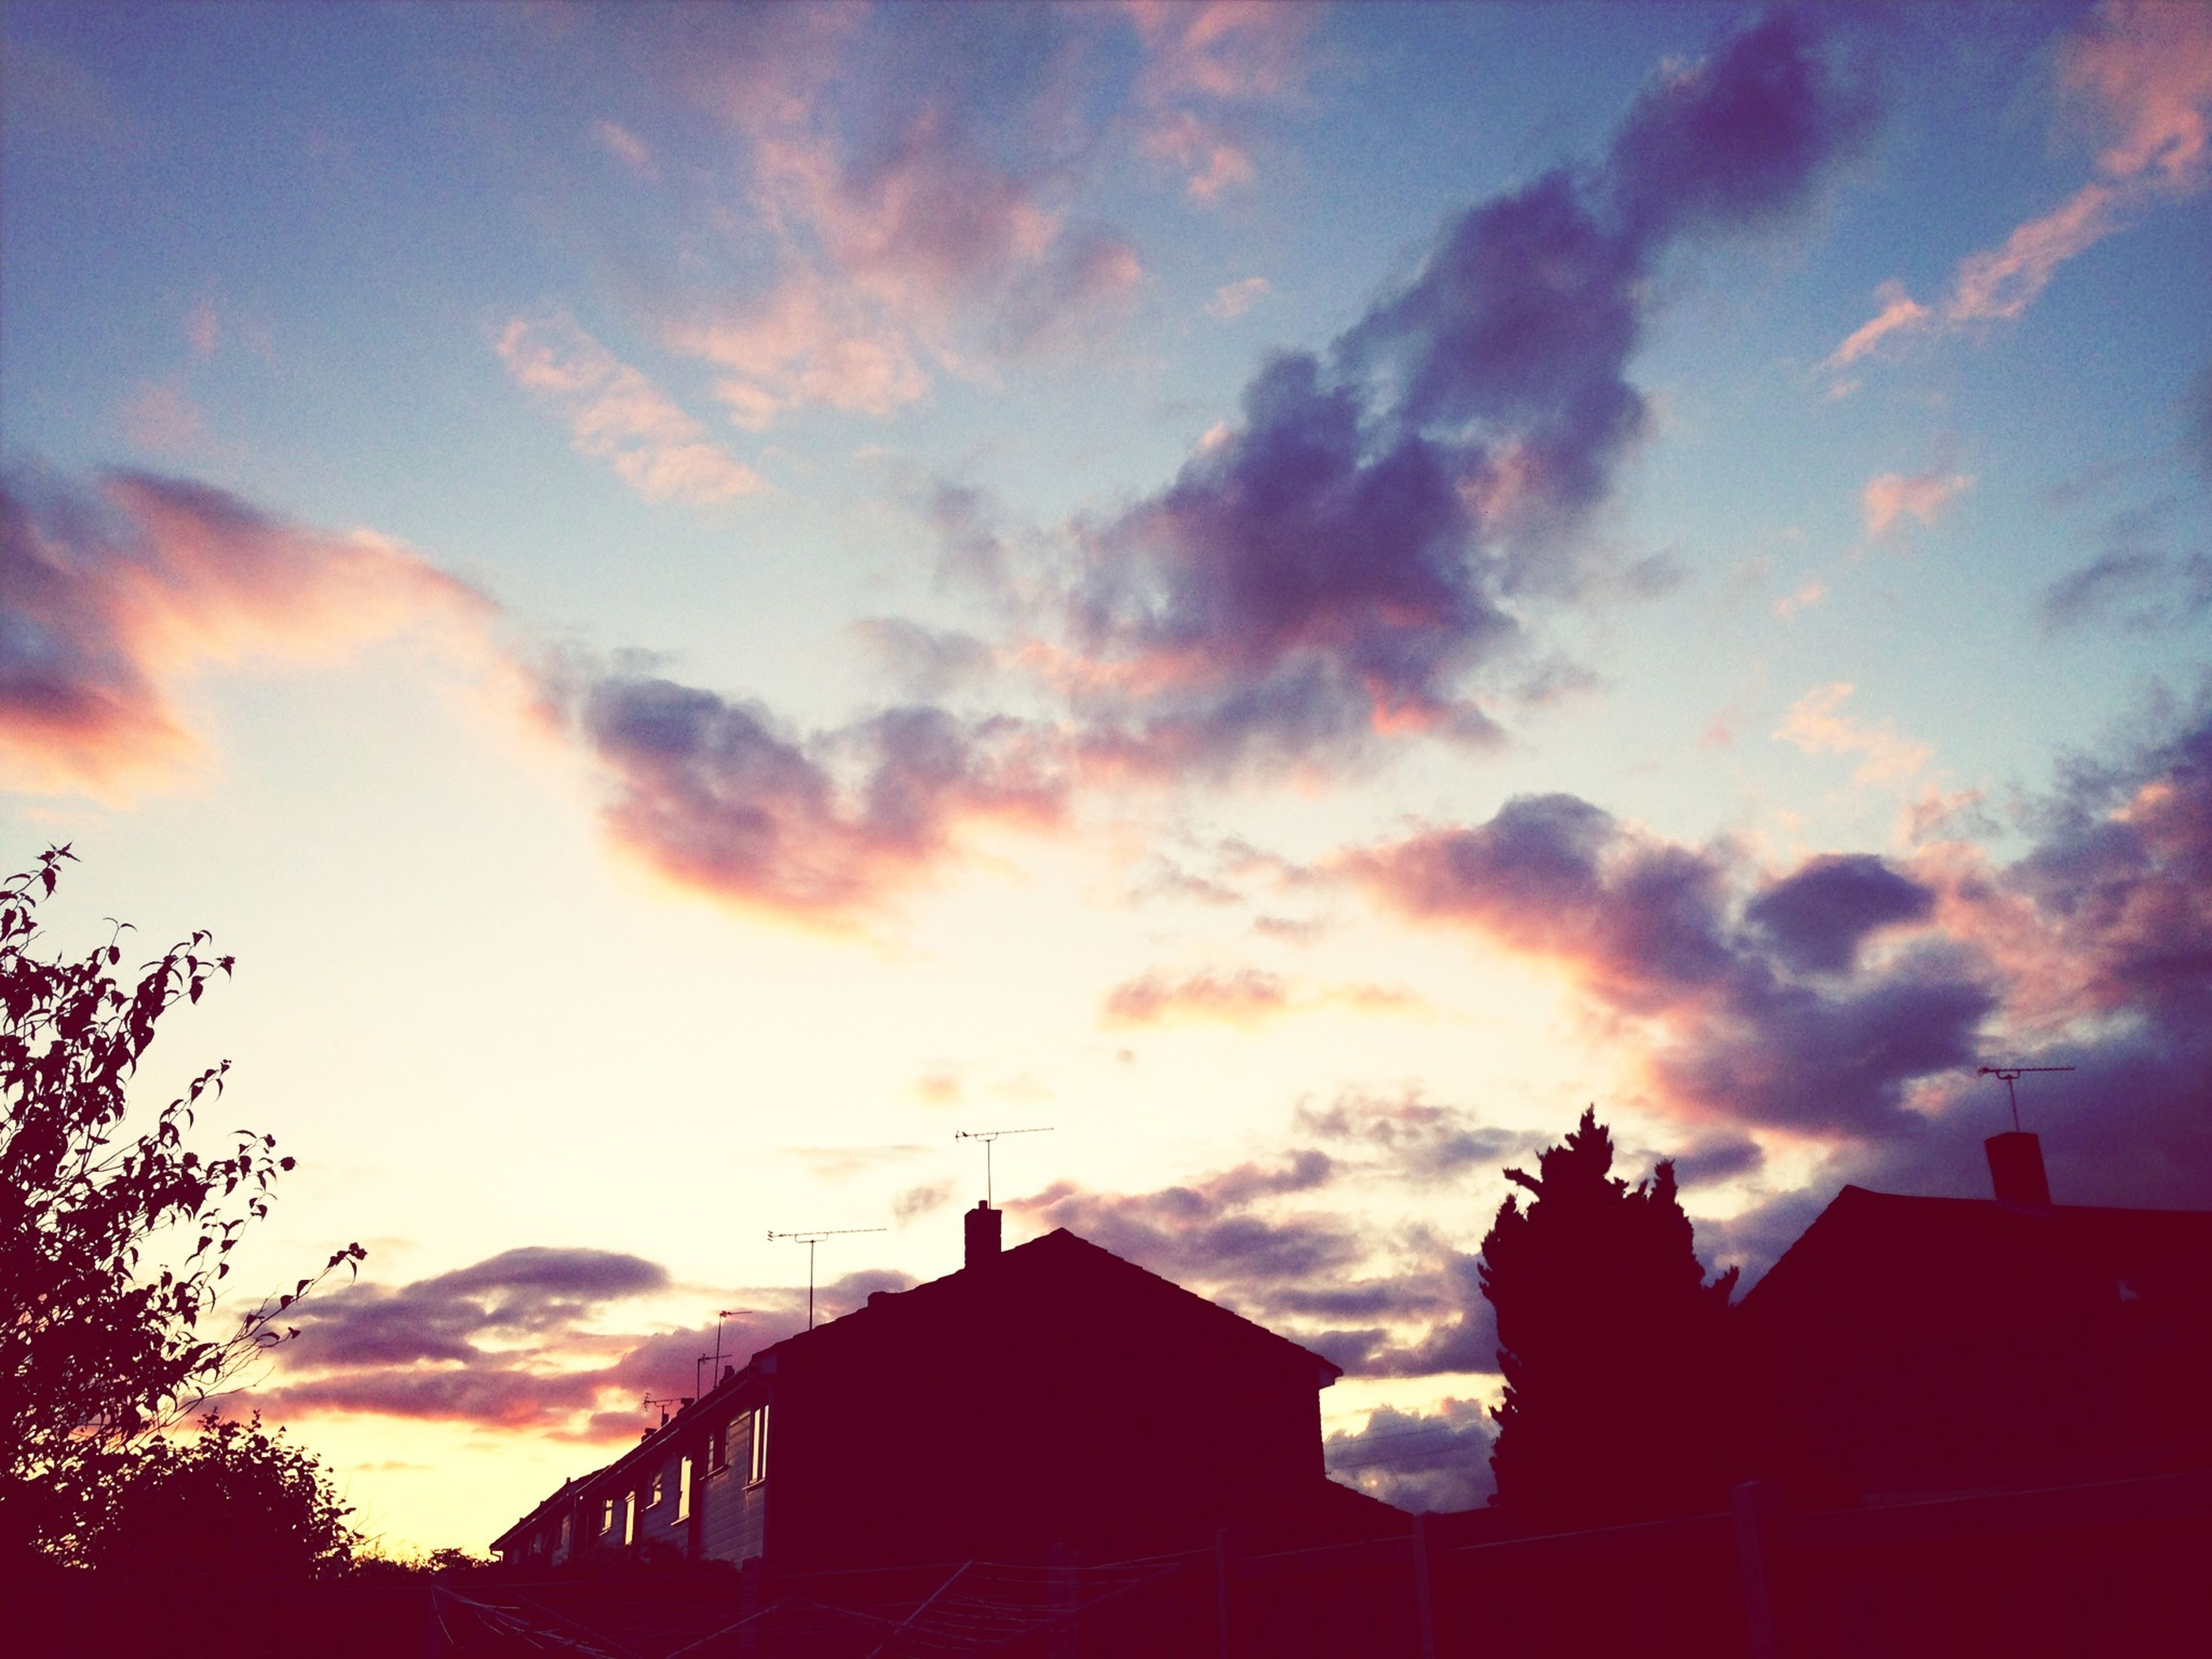 building exterior, architecture, built structure, sunset, sky, cloud - sky, low angle view, silhouette, house, cloudy, residential structure, cloud, orange color, high section, residential building, building, dramatic sky, roof, outdoors, nature